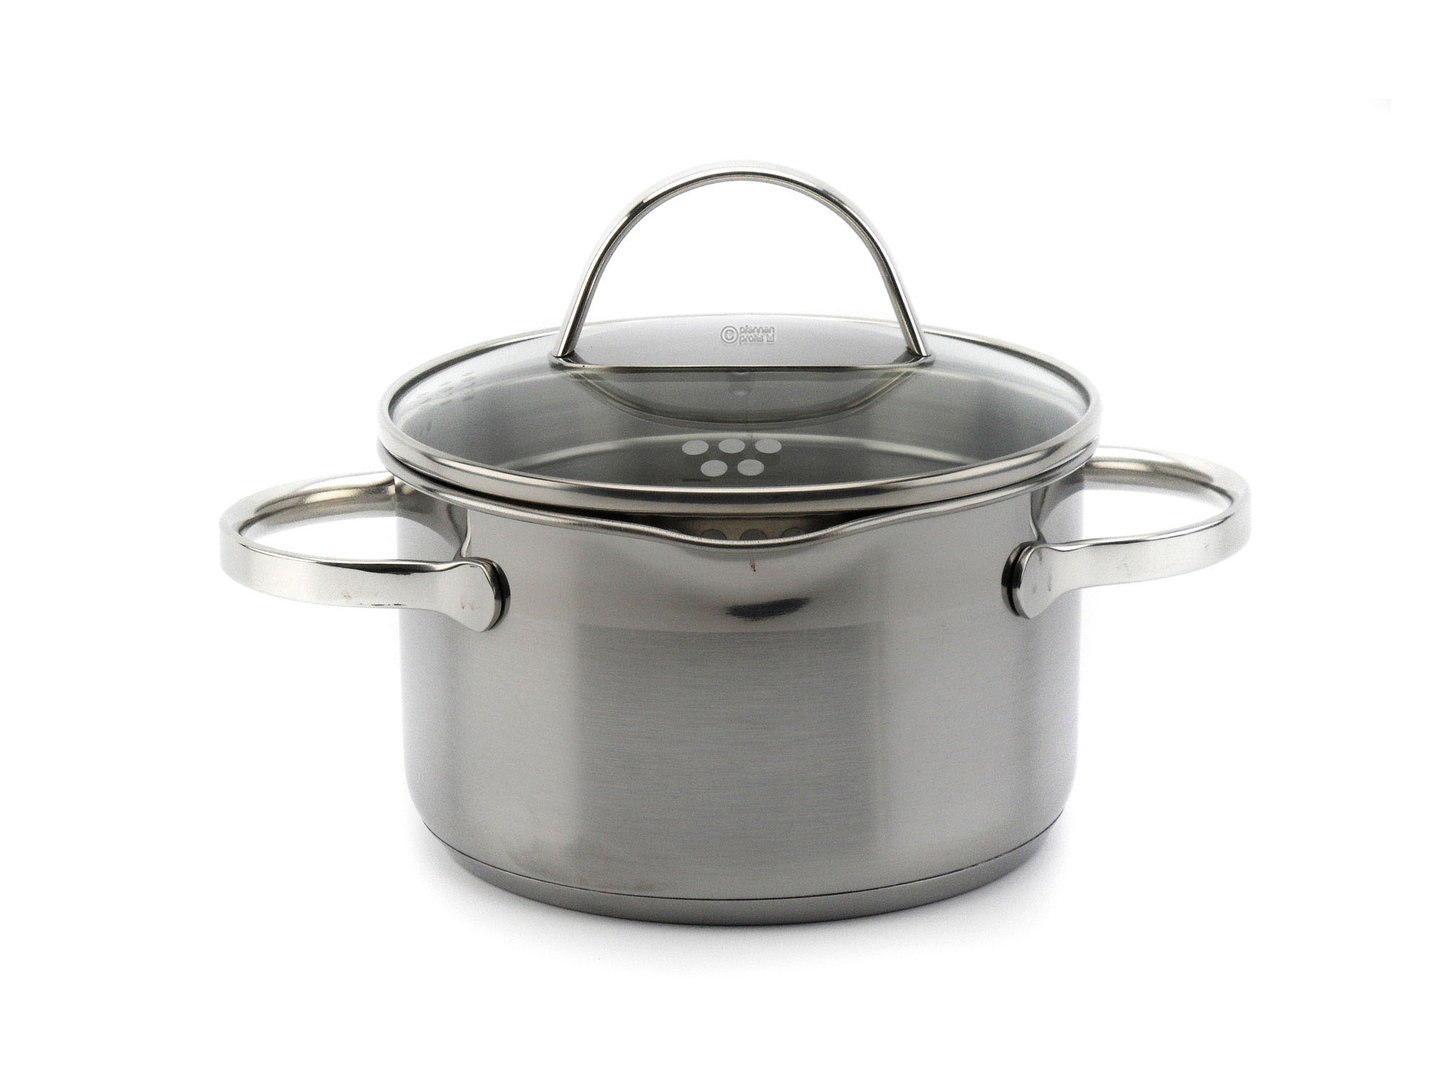 SSW easy straining casserole COMFORT 16 cm 1.9 L stainless steel induction